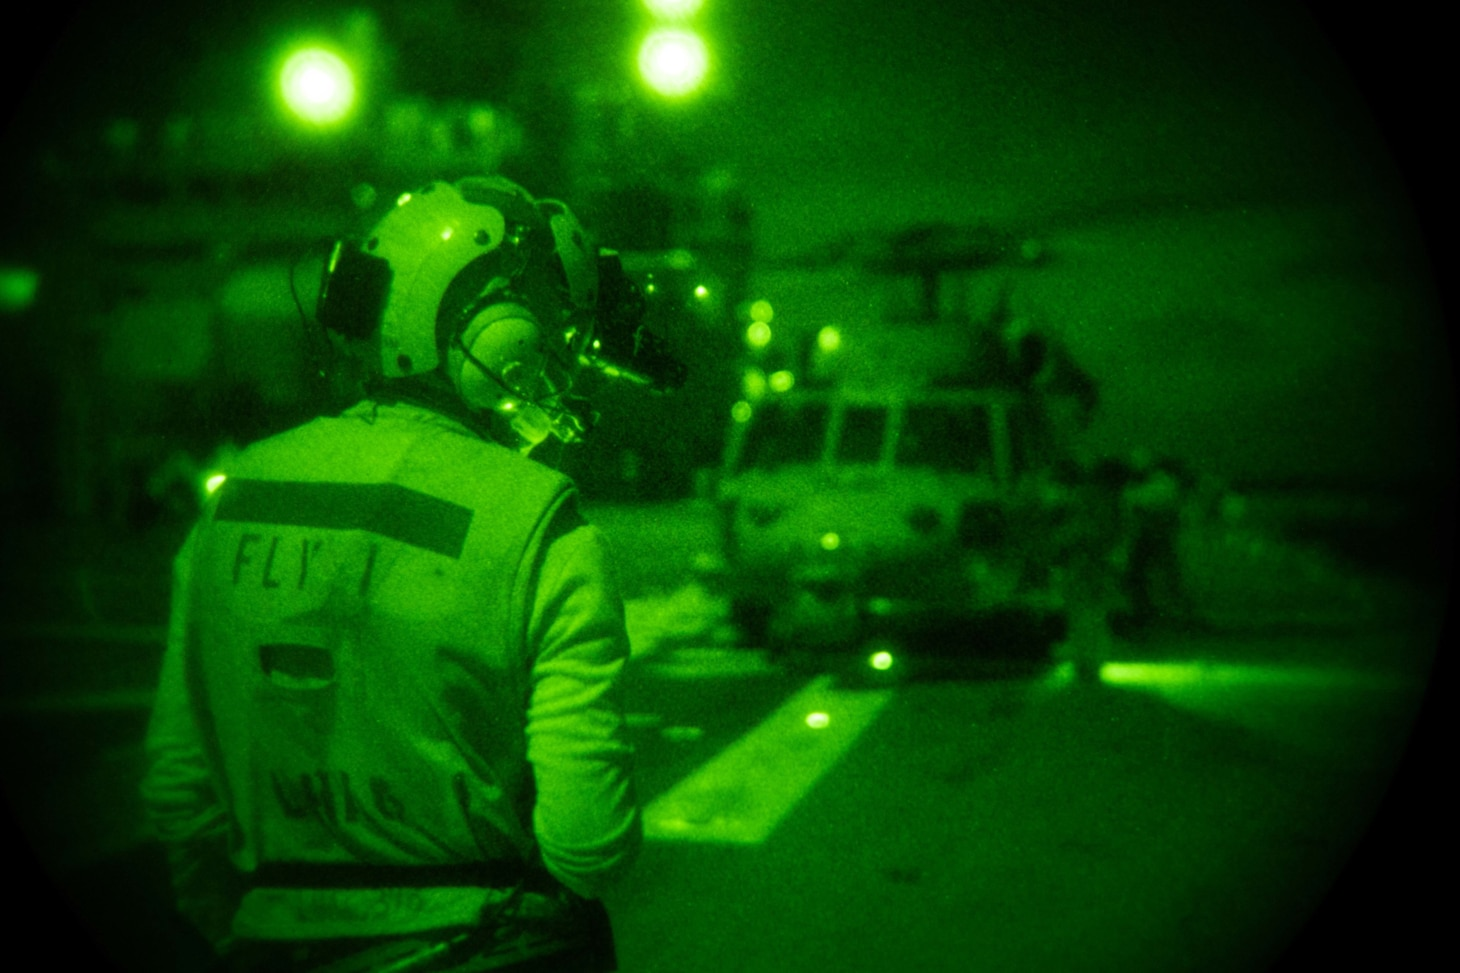 Aviation Boatswain's Mate (Handling) Airman Jesse Click, from Sylvan Springs, Ala., assigned to the forward-deployed amphibious assault ship USS America (LHA 6), signals an MH-60S Seahawk helicopter from the Helicopter Sea Combat Squadron (HSC) 25. America, flagship of the America Expeditionary Strike Group, along with the 31st Marine Expeditionary Unit, is operating in the U.S. 7th Fleet area of responsibility to enhance interoperability with allies and partners and serve as a ready response force to defend peace and stability in the Indo-Pacific region.